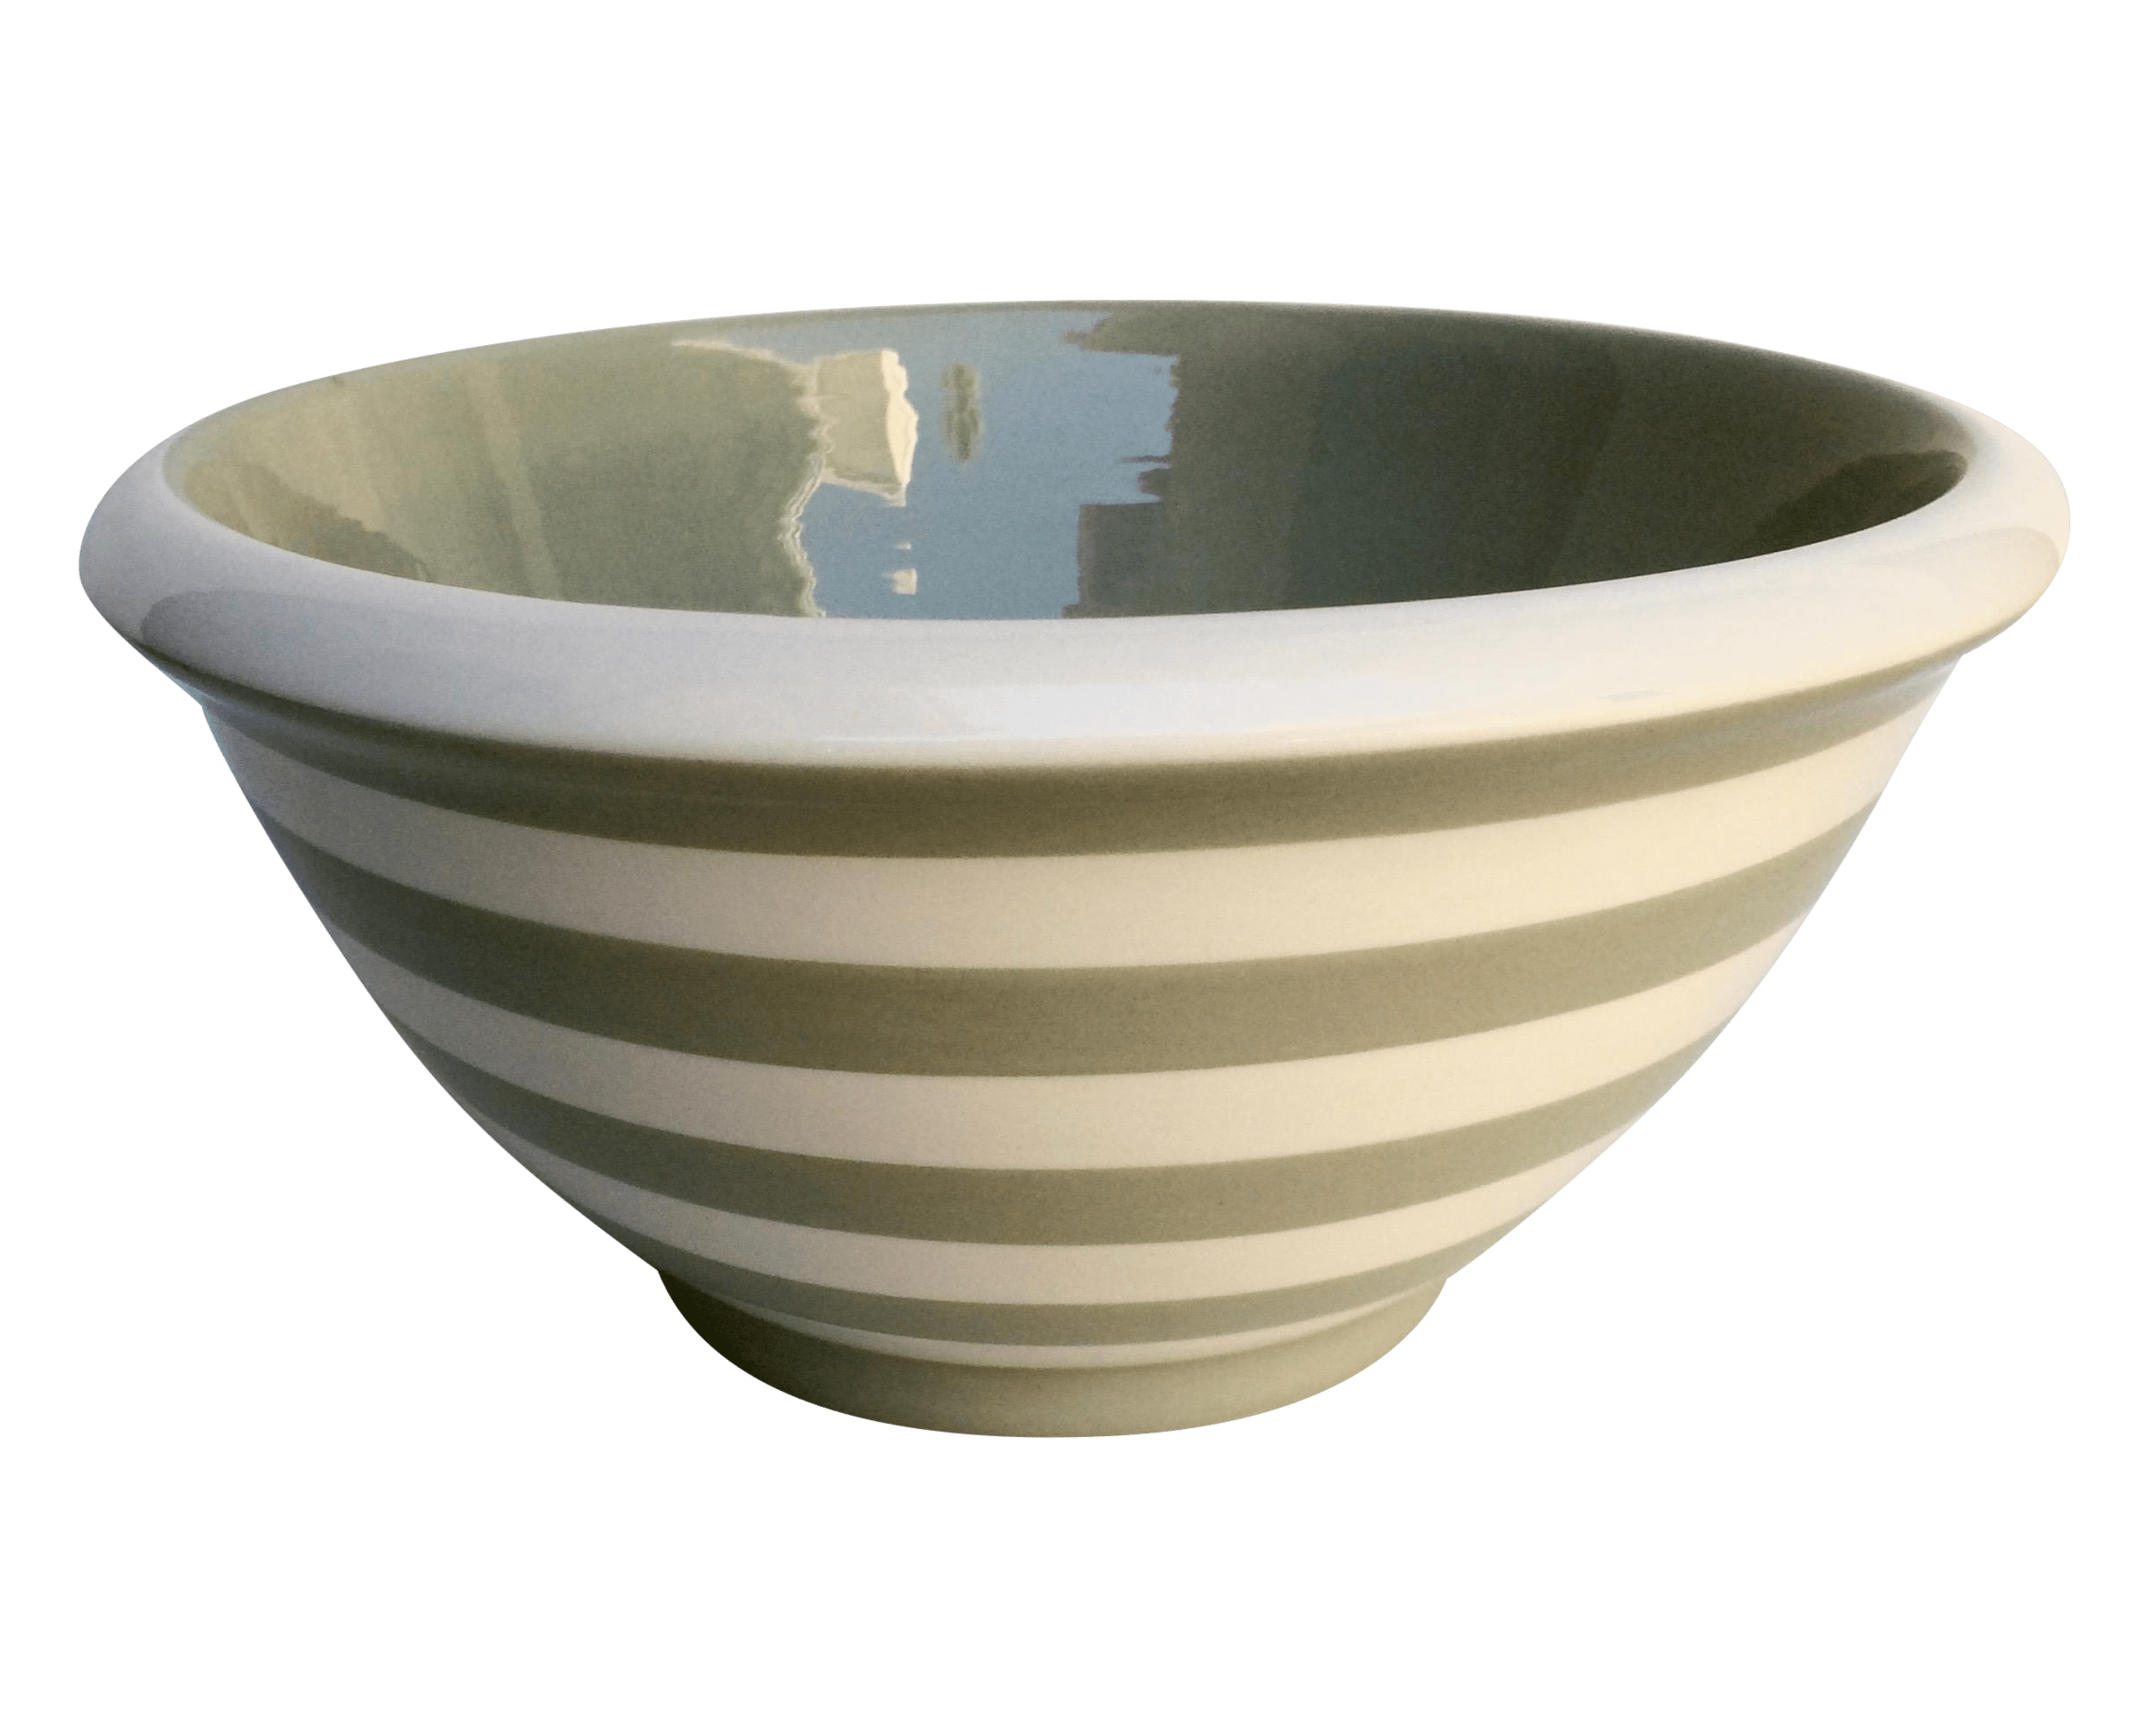 Terramoto Striped Mixing Bowl